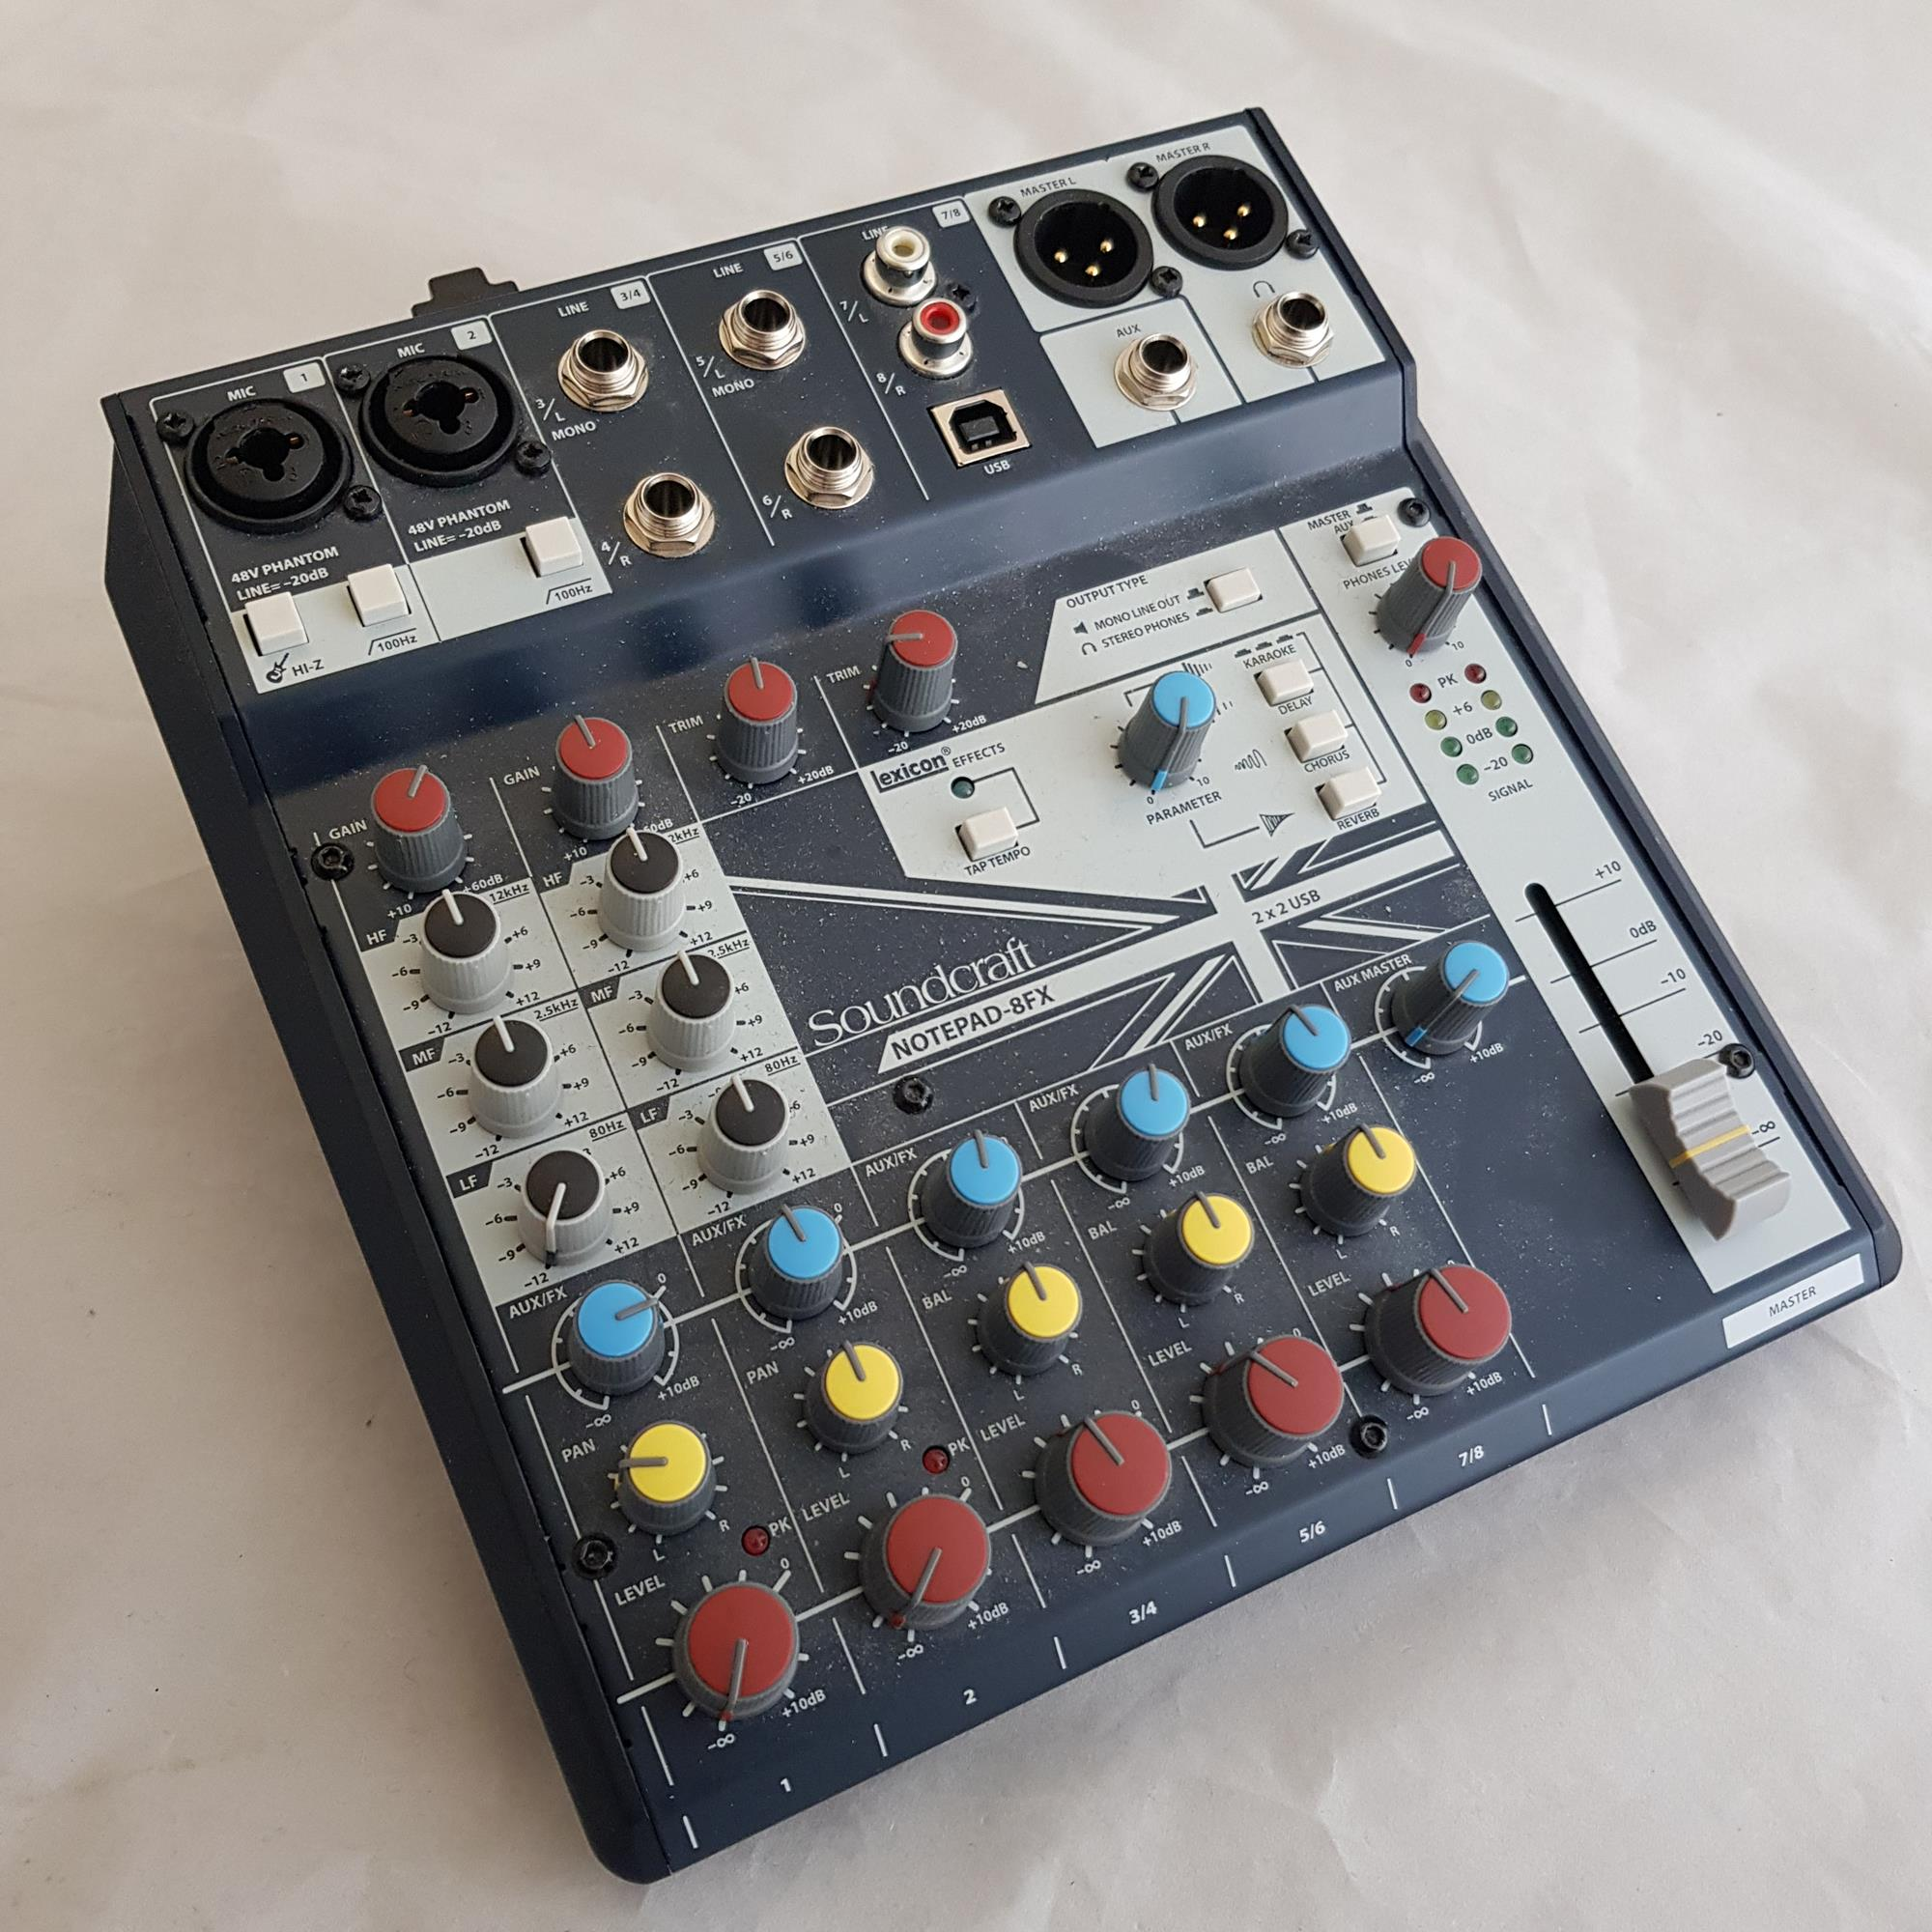 SOUNDCRAFT-NOTEPAD-8FX-MIXER-sku-1616251010509